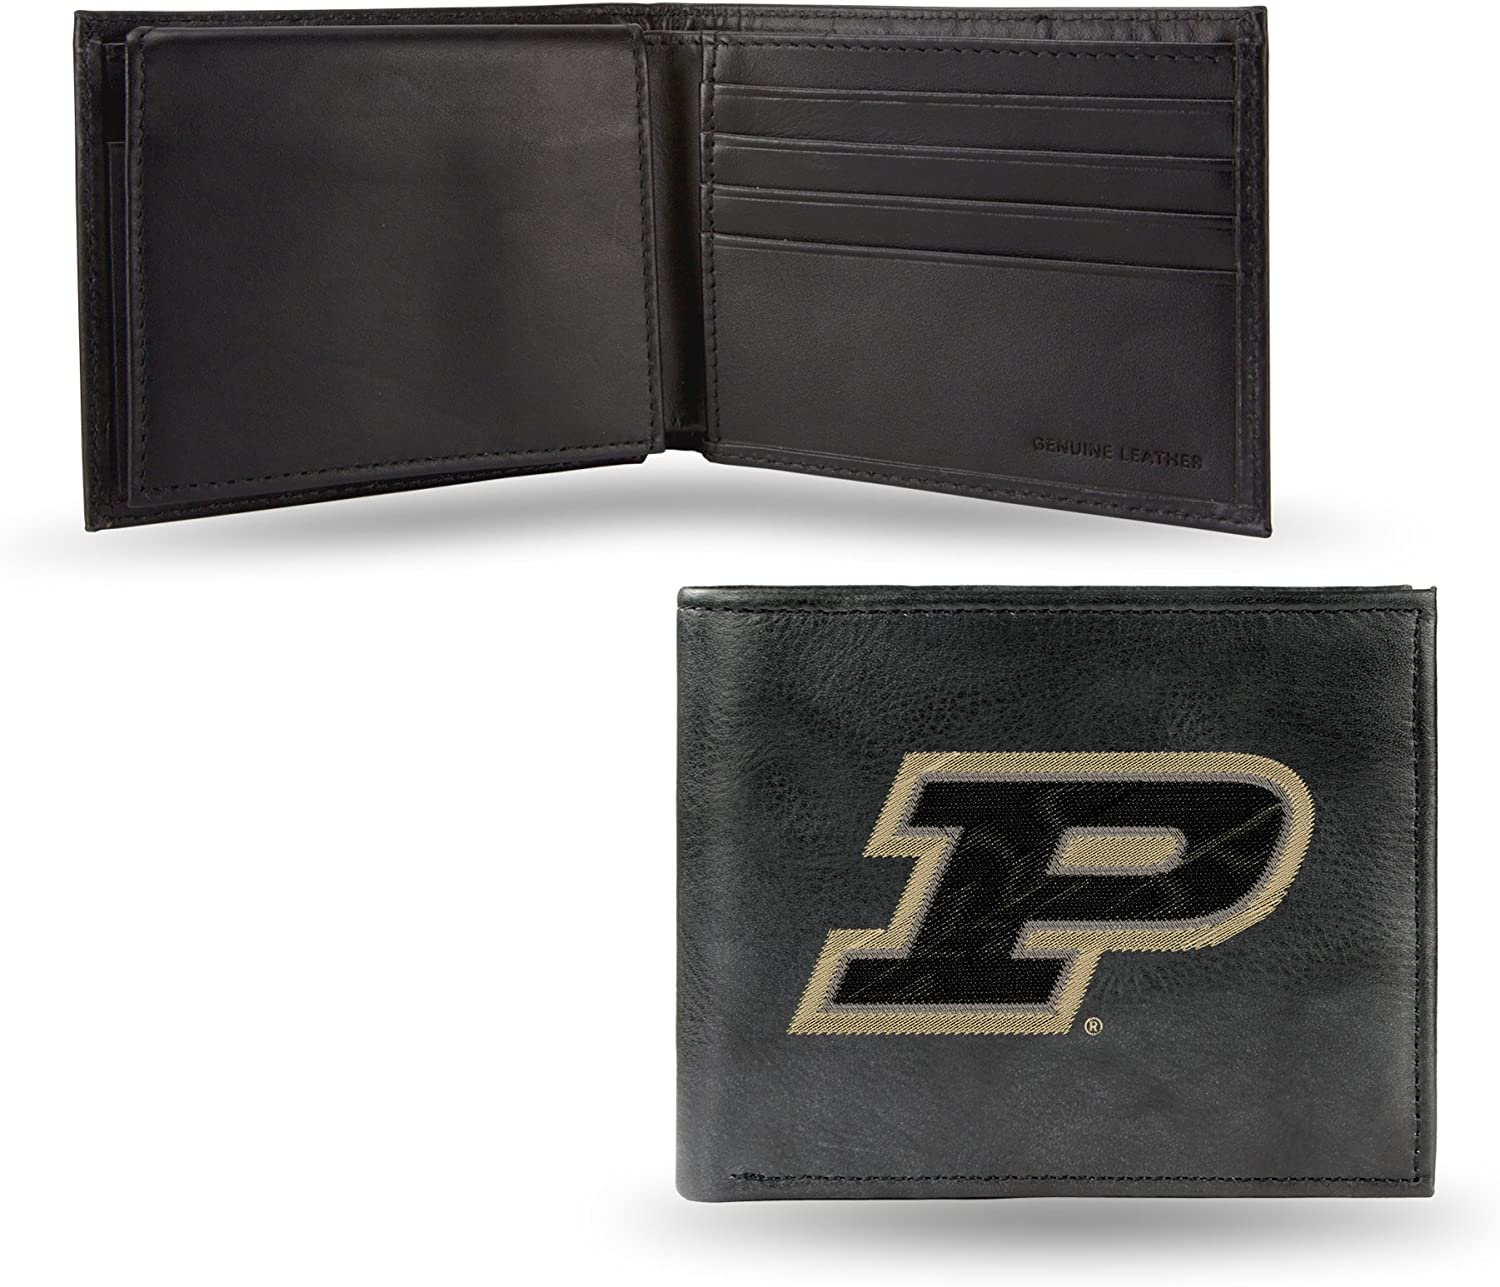 Max 87% OFF Rico Industries Men's Miami Mall Embroidered Wallet Billfold Leather